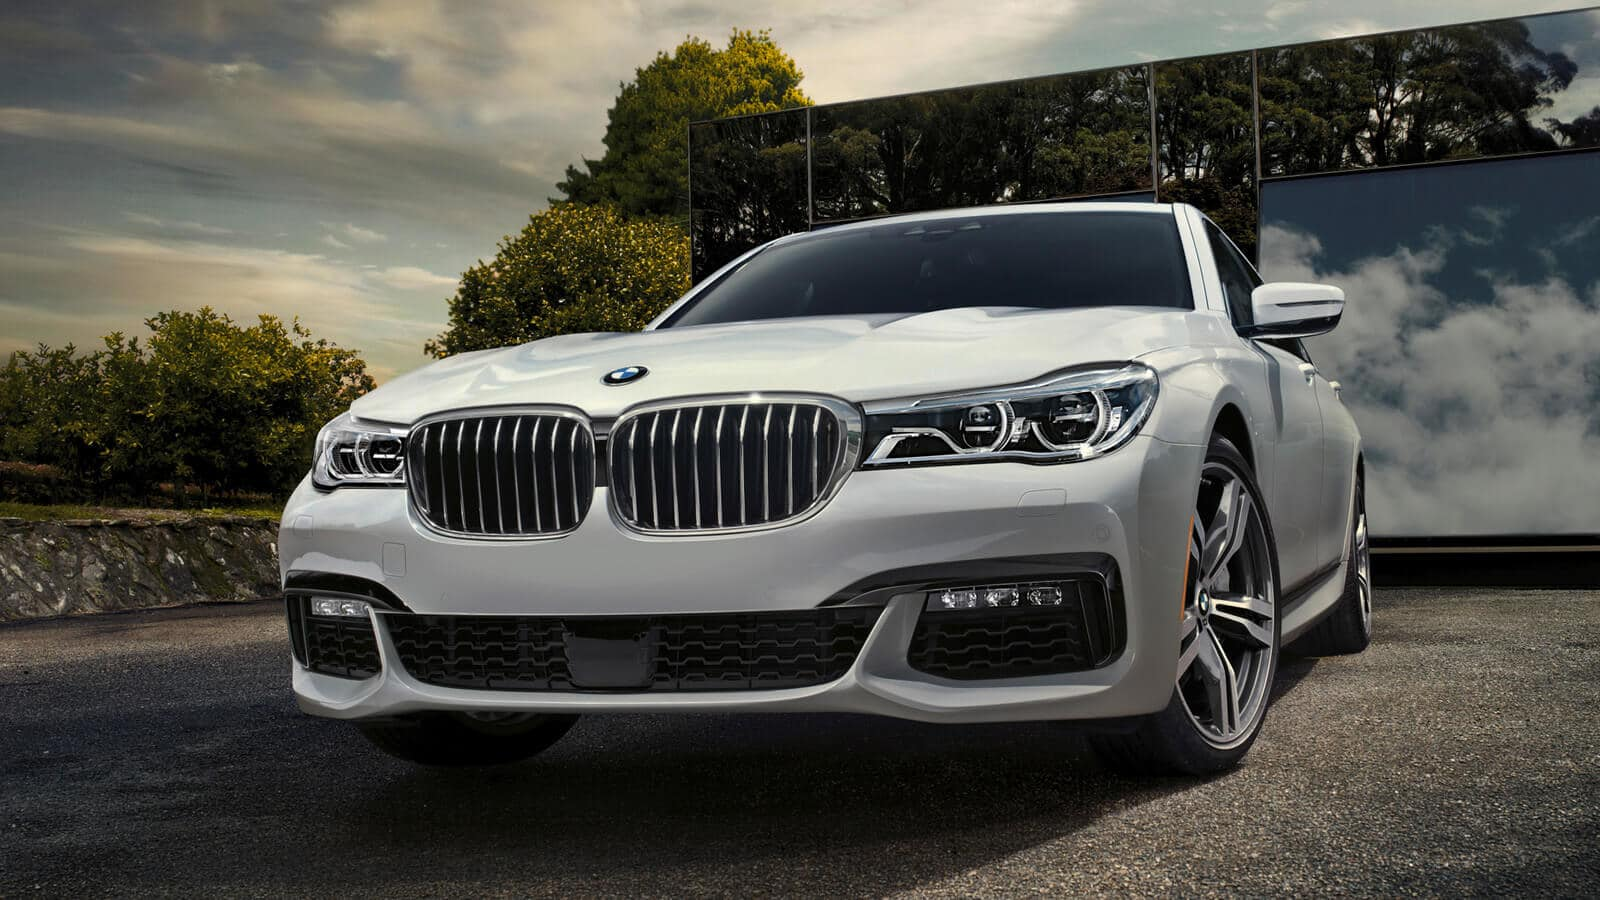 BMW 7 Series 2019 Wallpapers - Wallpaper Cave